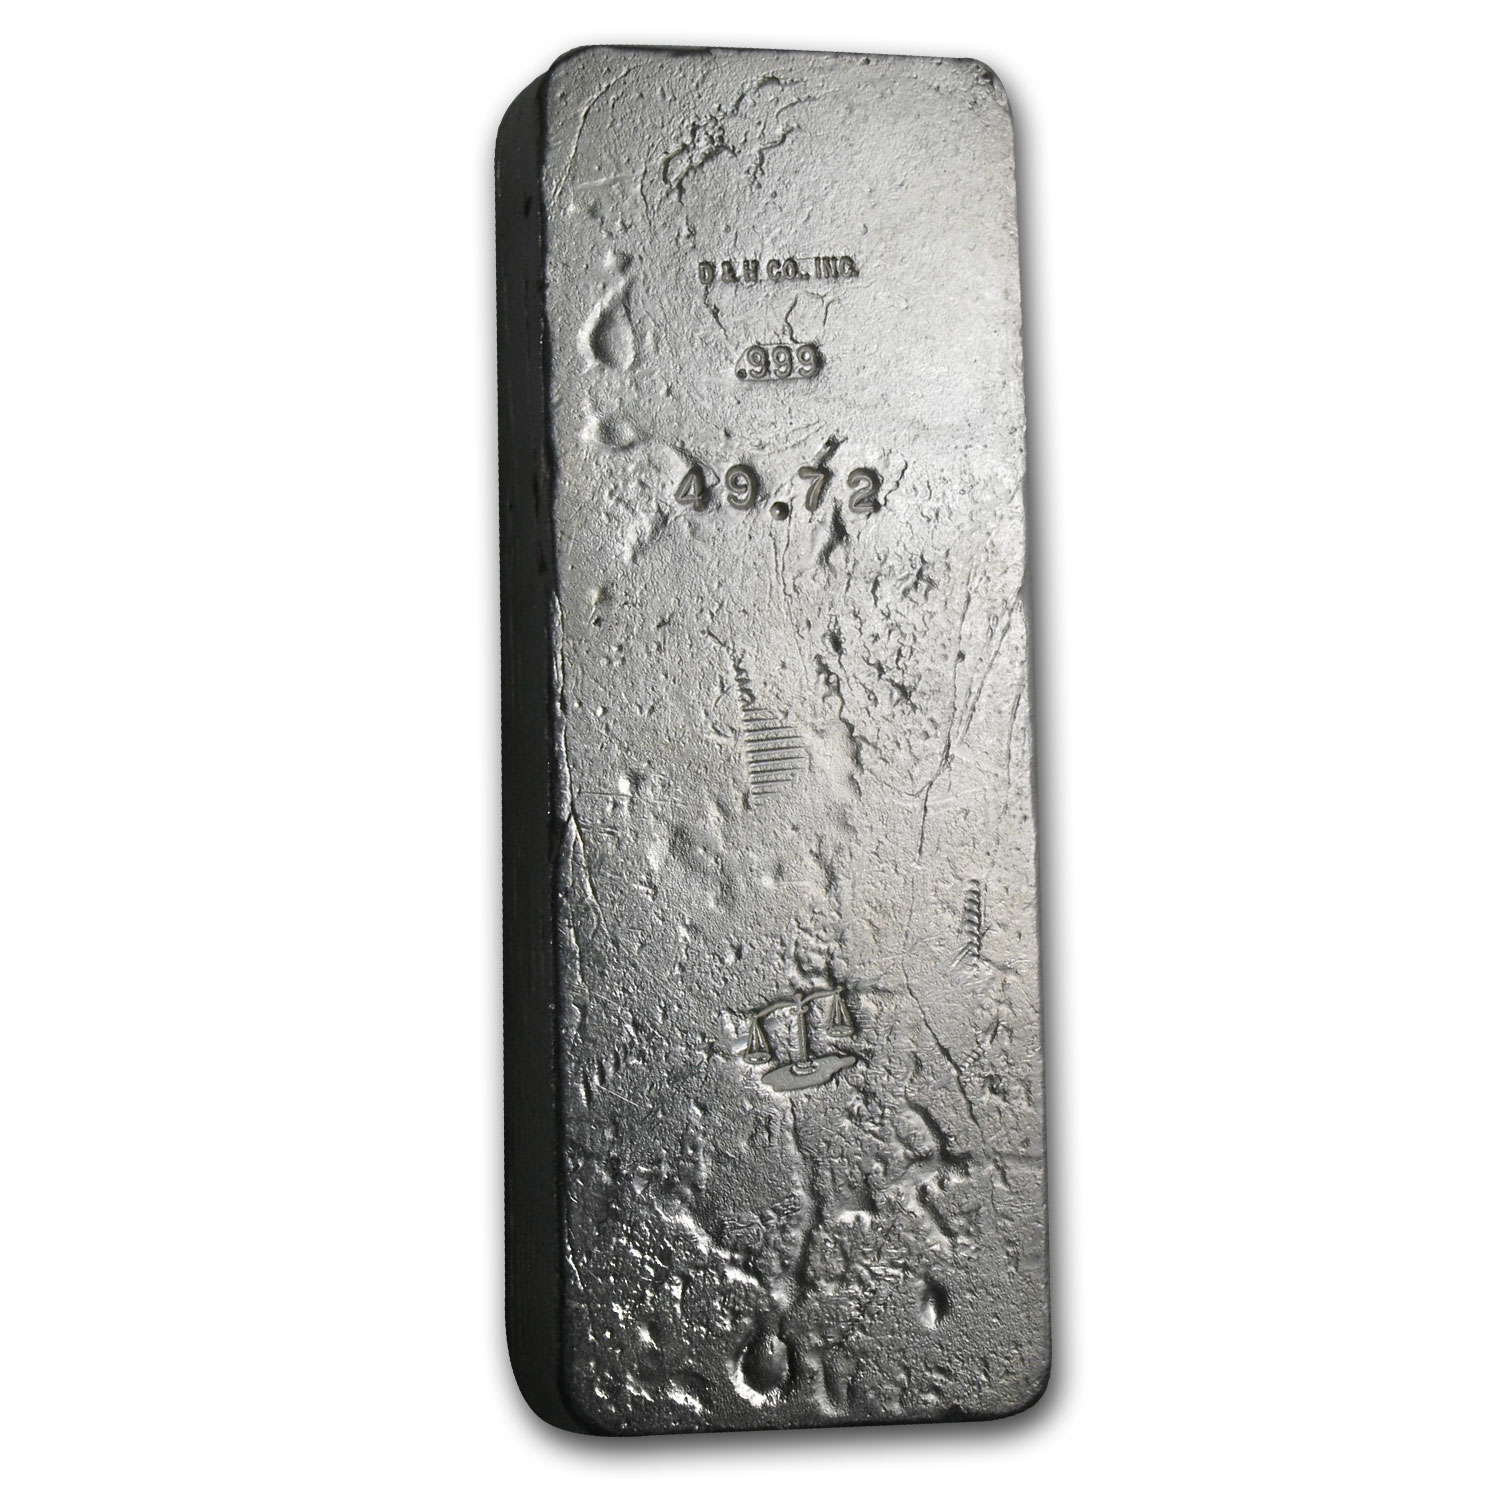 49.72 oz Silver Bar - D & H Company (Scales of Justice)